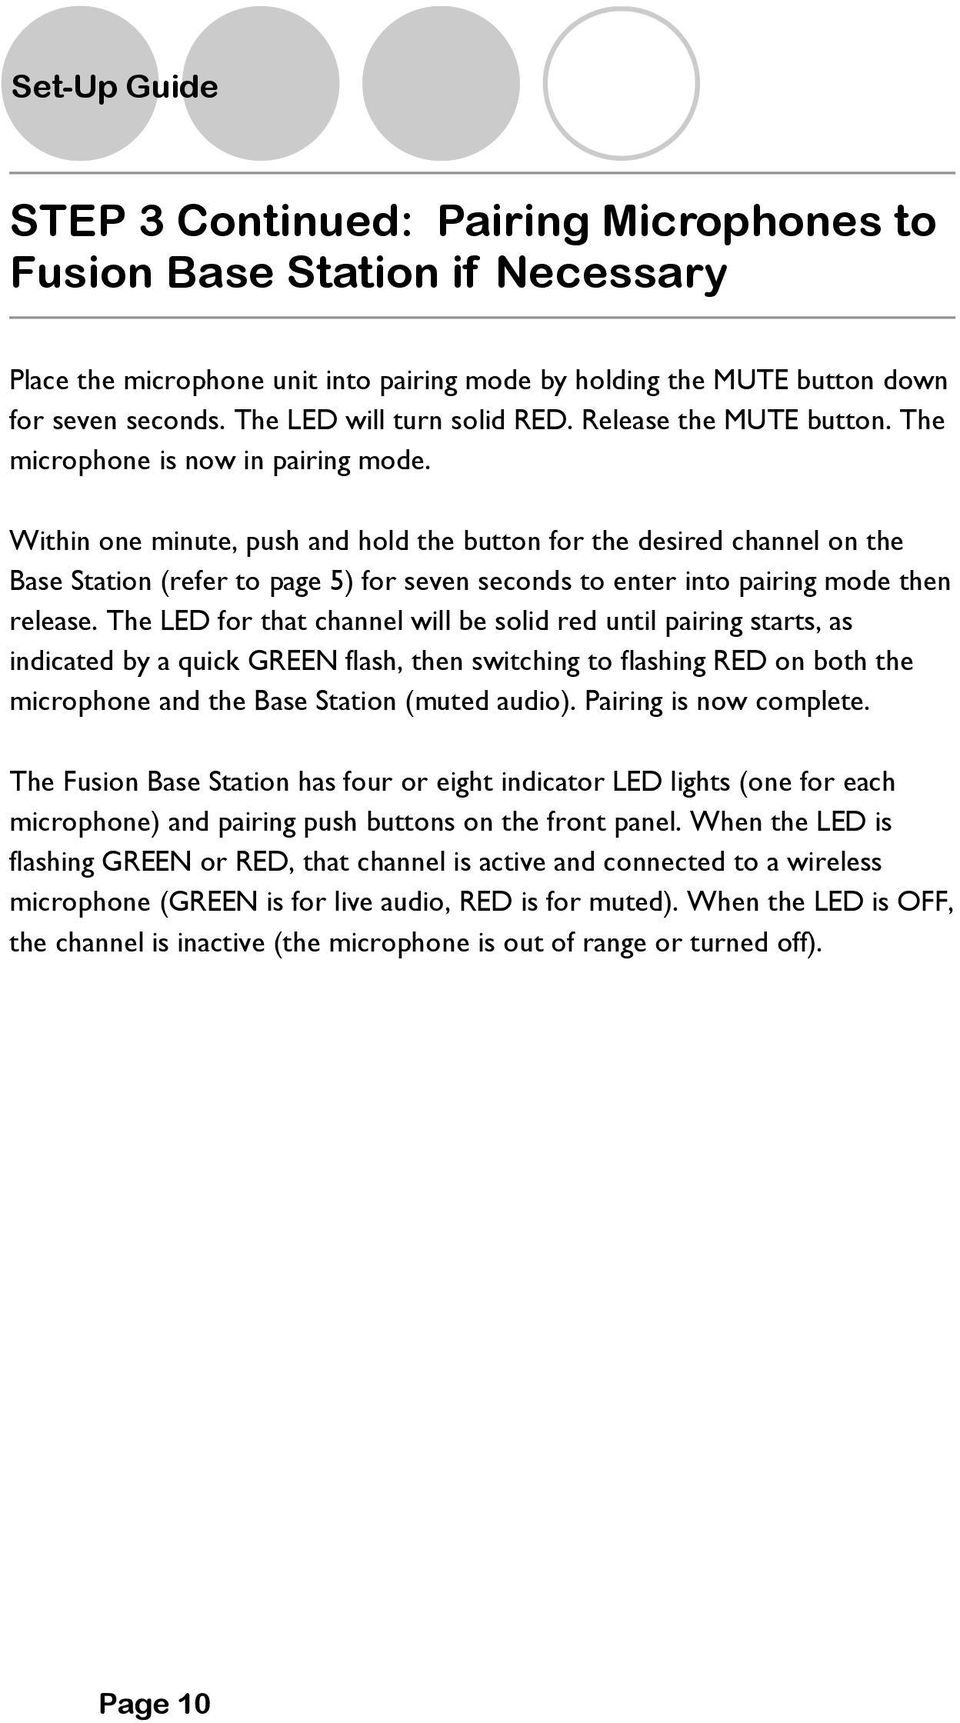 Within one minute, push and hold the button for the desired channel on the Base Station (refer to page 5) for seven seconds to enter into pairing mode then release.